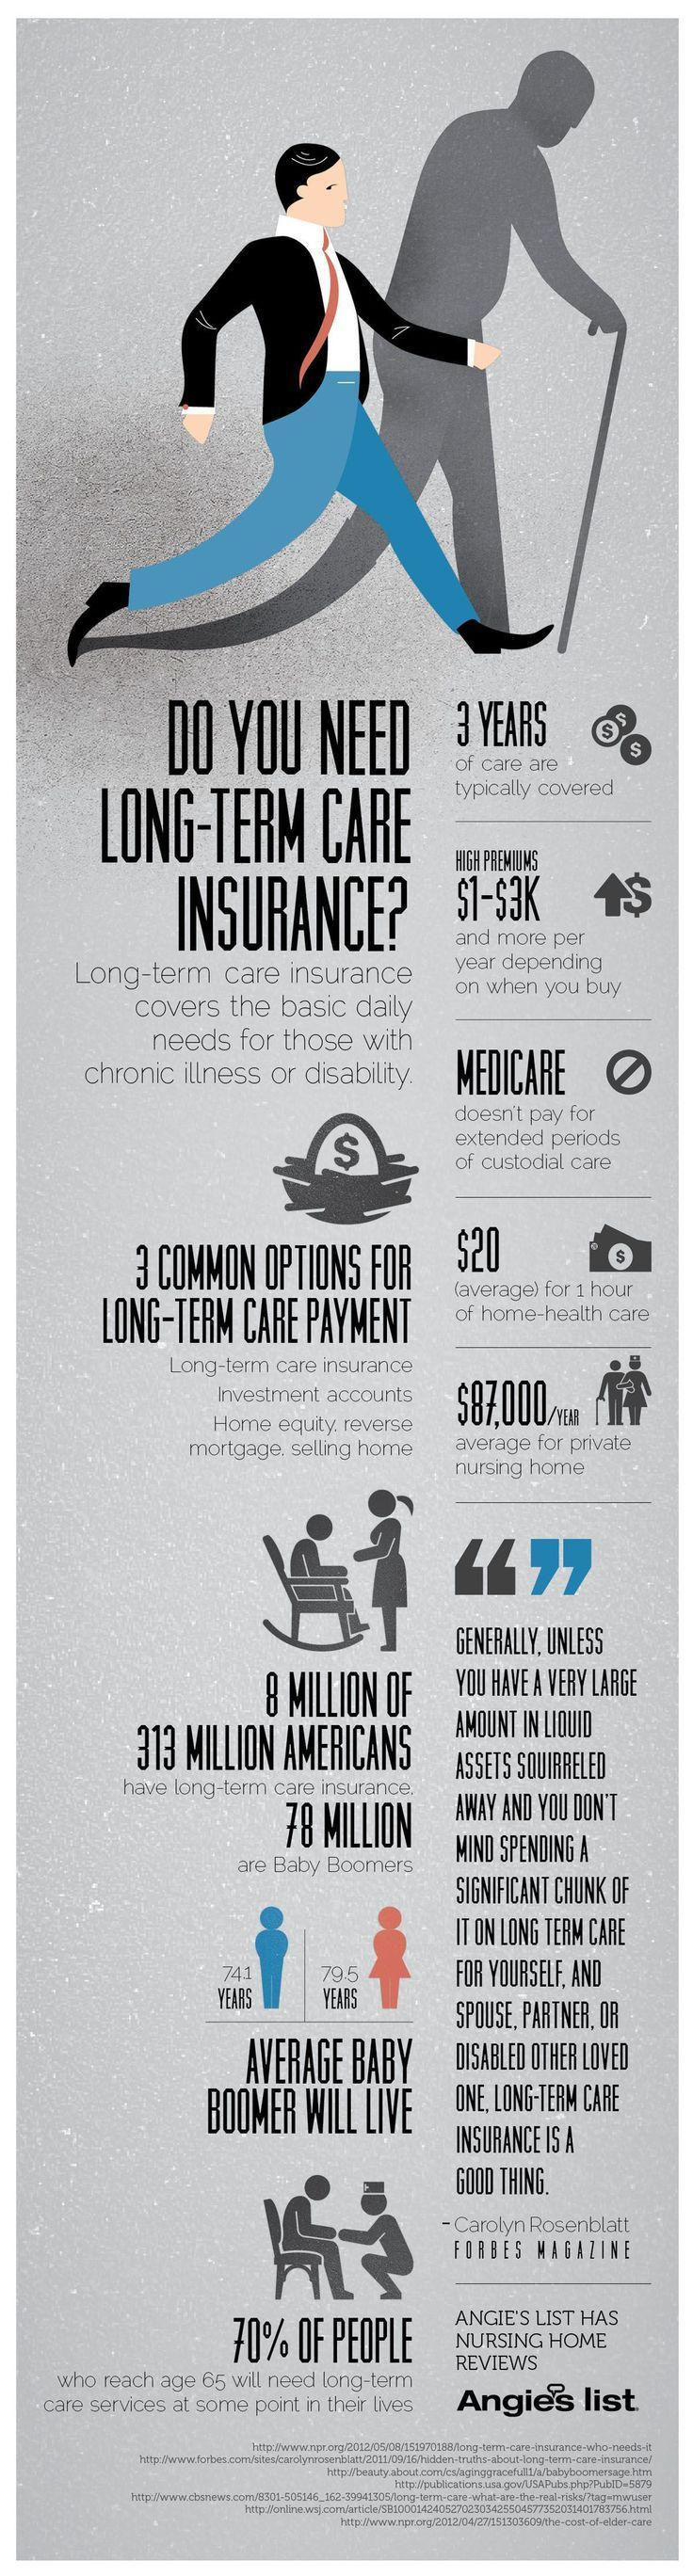 Tips on whether or not you need long-term care insurance Insuran buying tips,how to buy insurance,financial planning